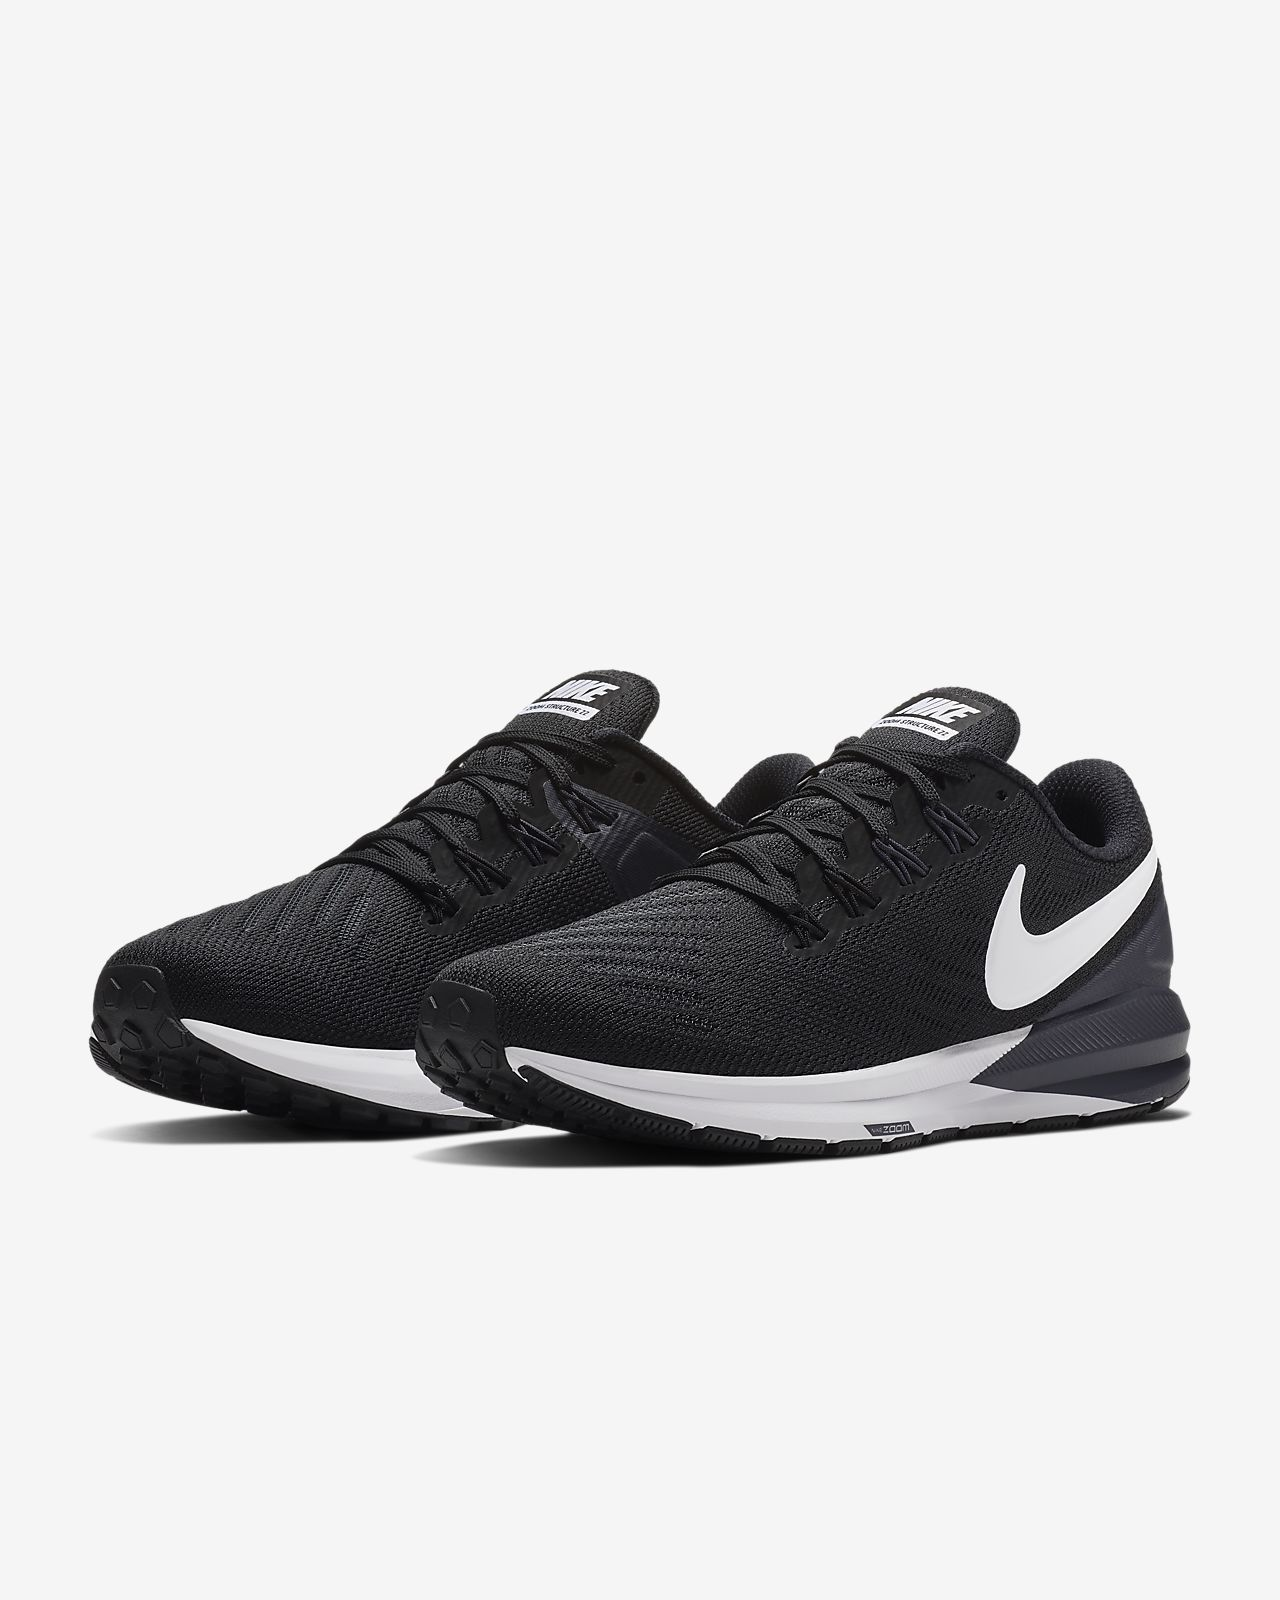 buy online 5c003 70c94 ... Nike Air Zoom Structure 22 Women s Running Shoe